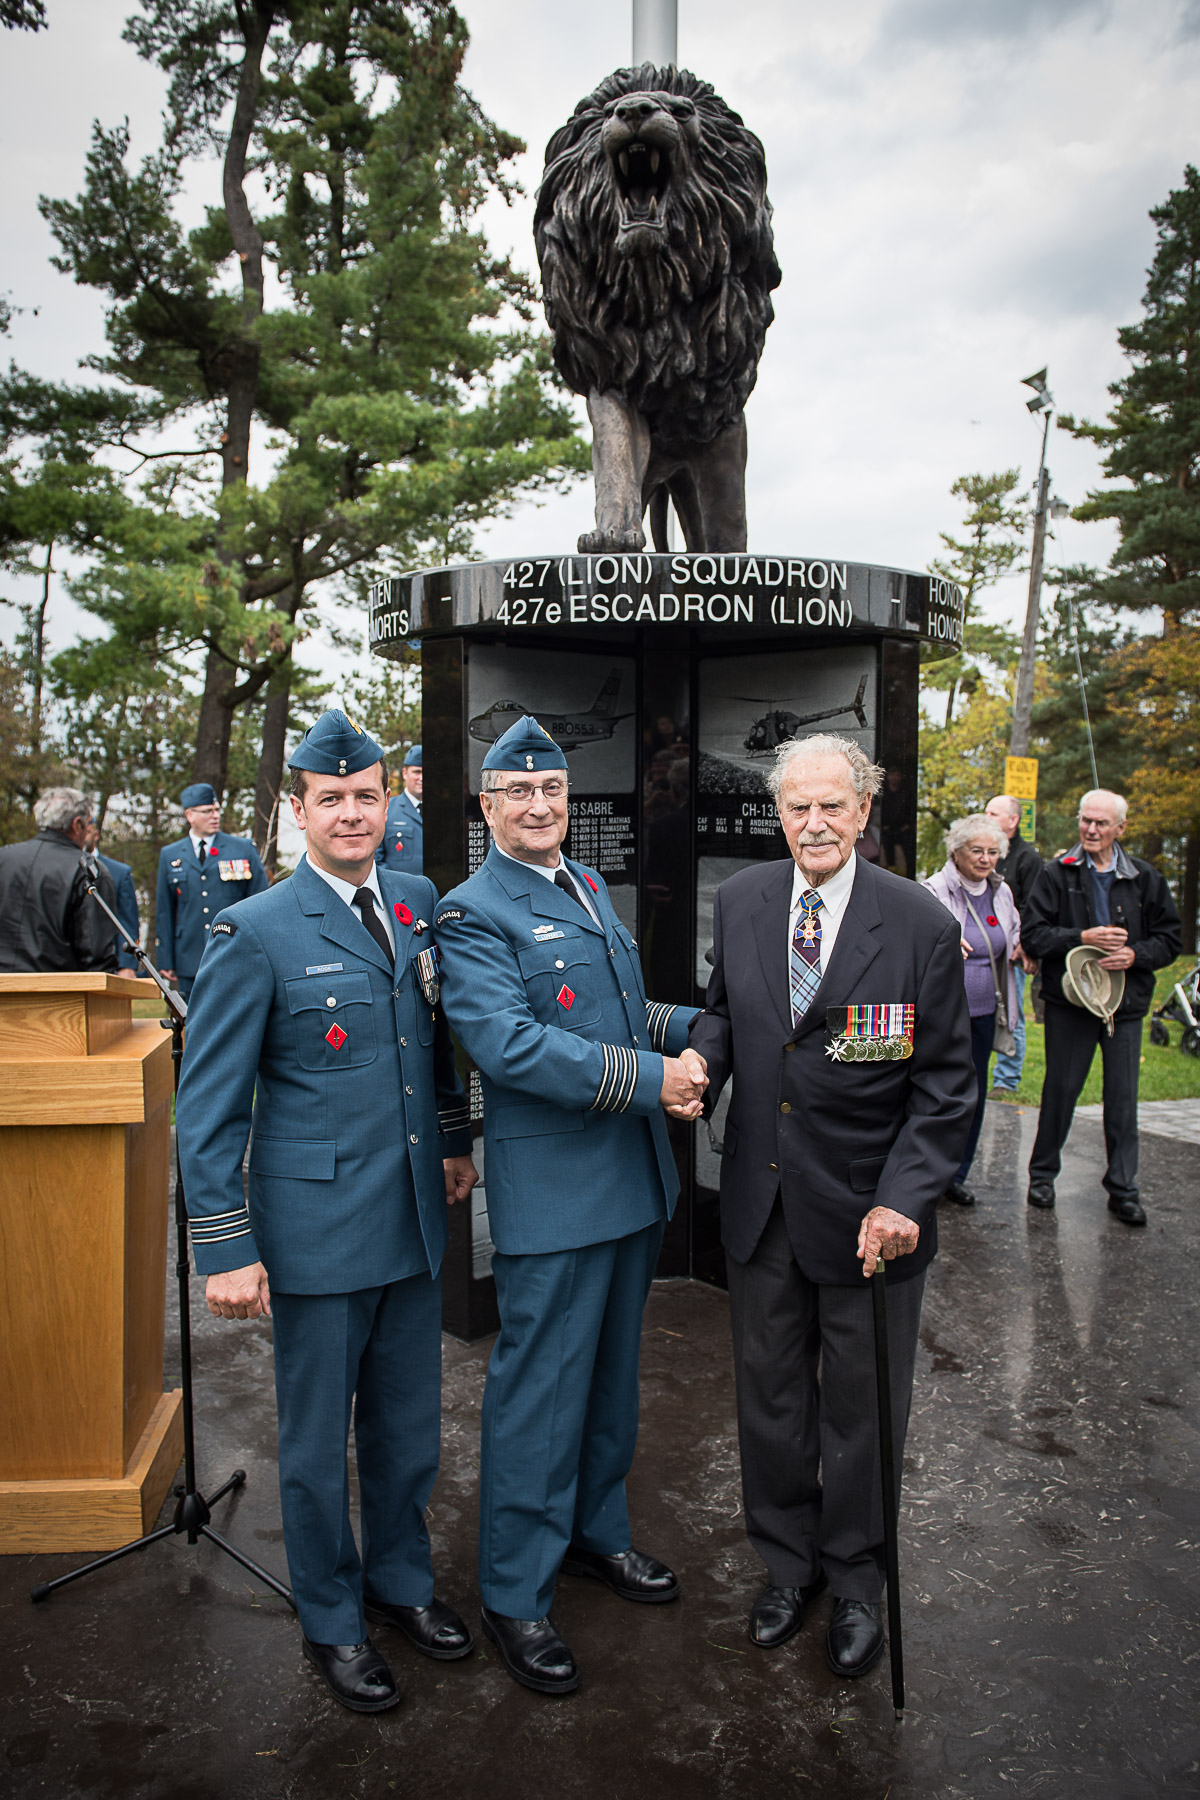 Two men in blue uniforms and an older man in a darker blue suit, all wearing medals, stand in front of a black monument topped with a statue of a roaring lion.